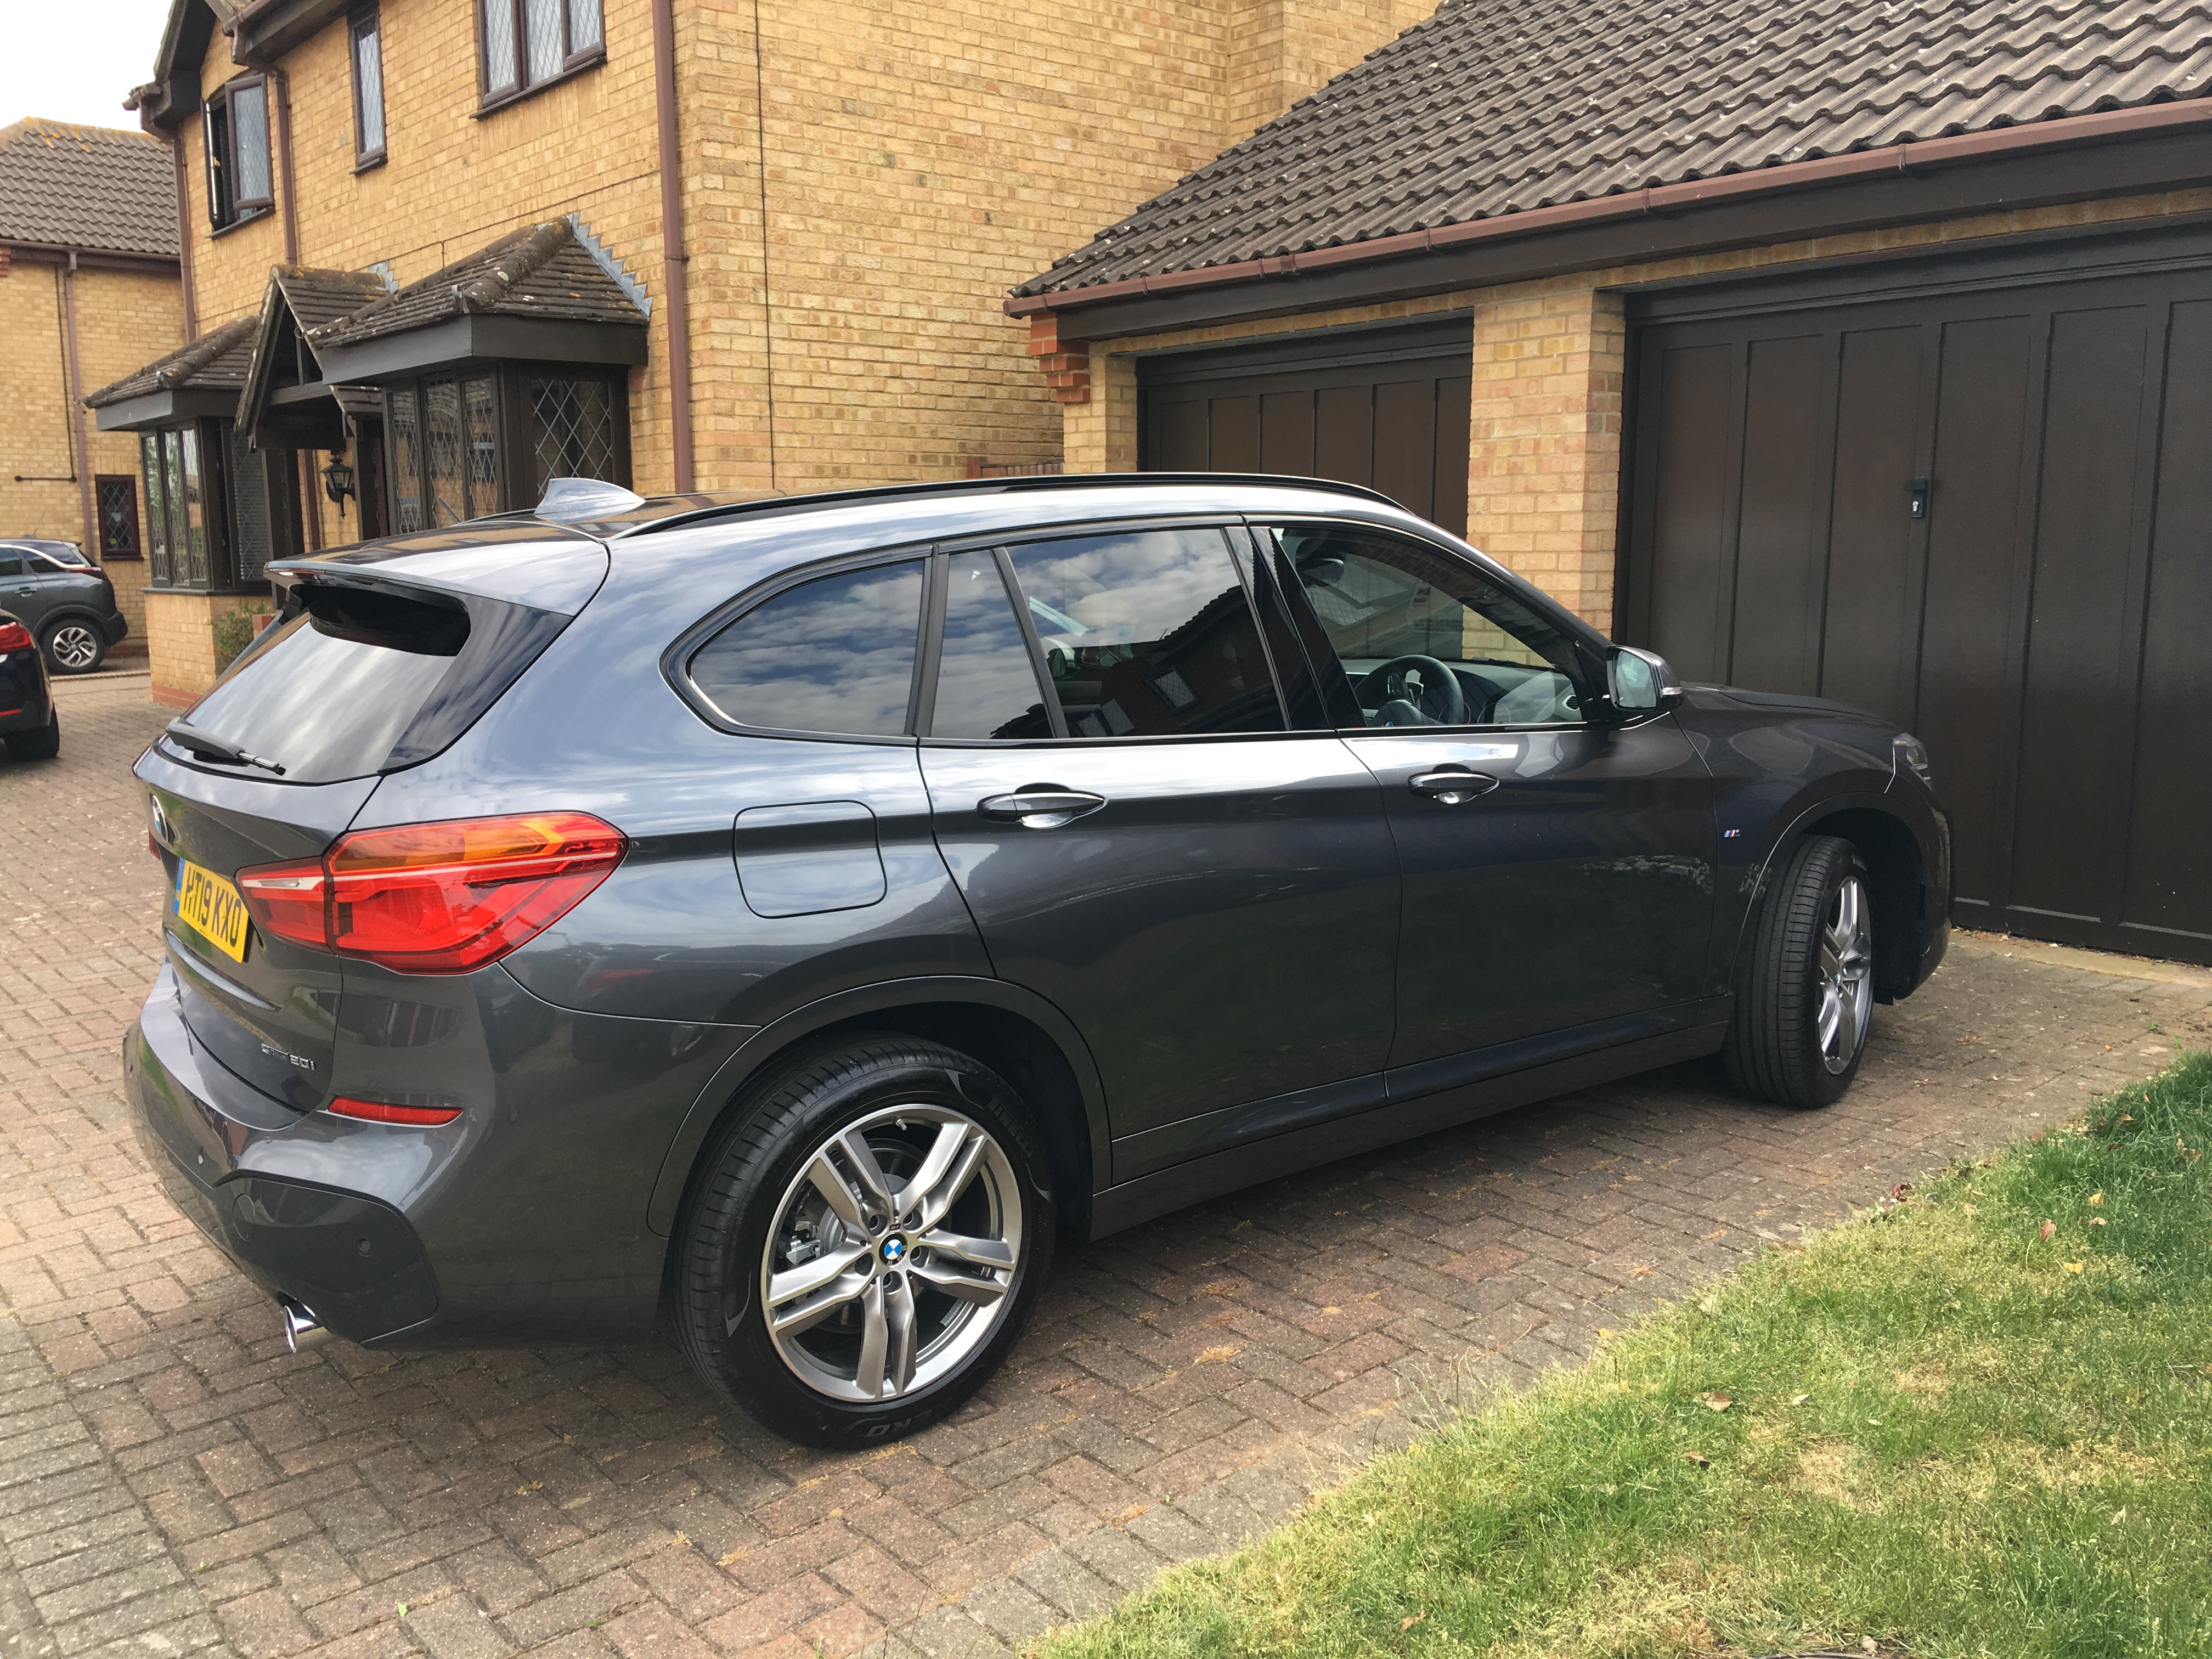 In Review Bmw X1 Sdrive 20i M Sport 5dr Step Auto Auto Petrol Carlease Uk